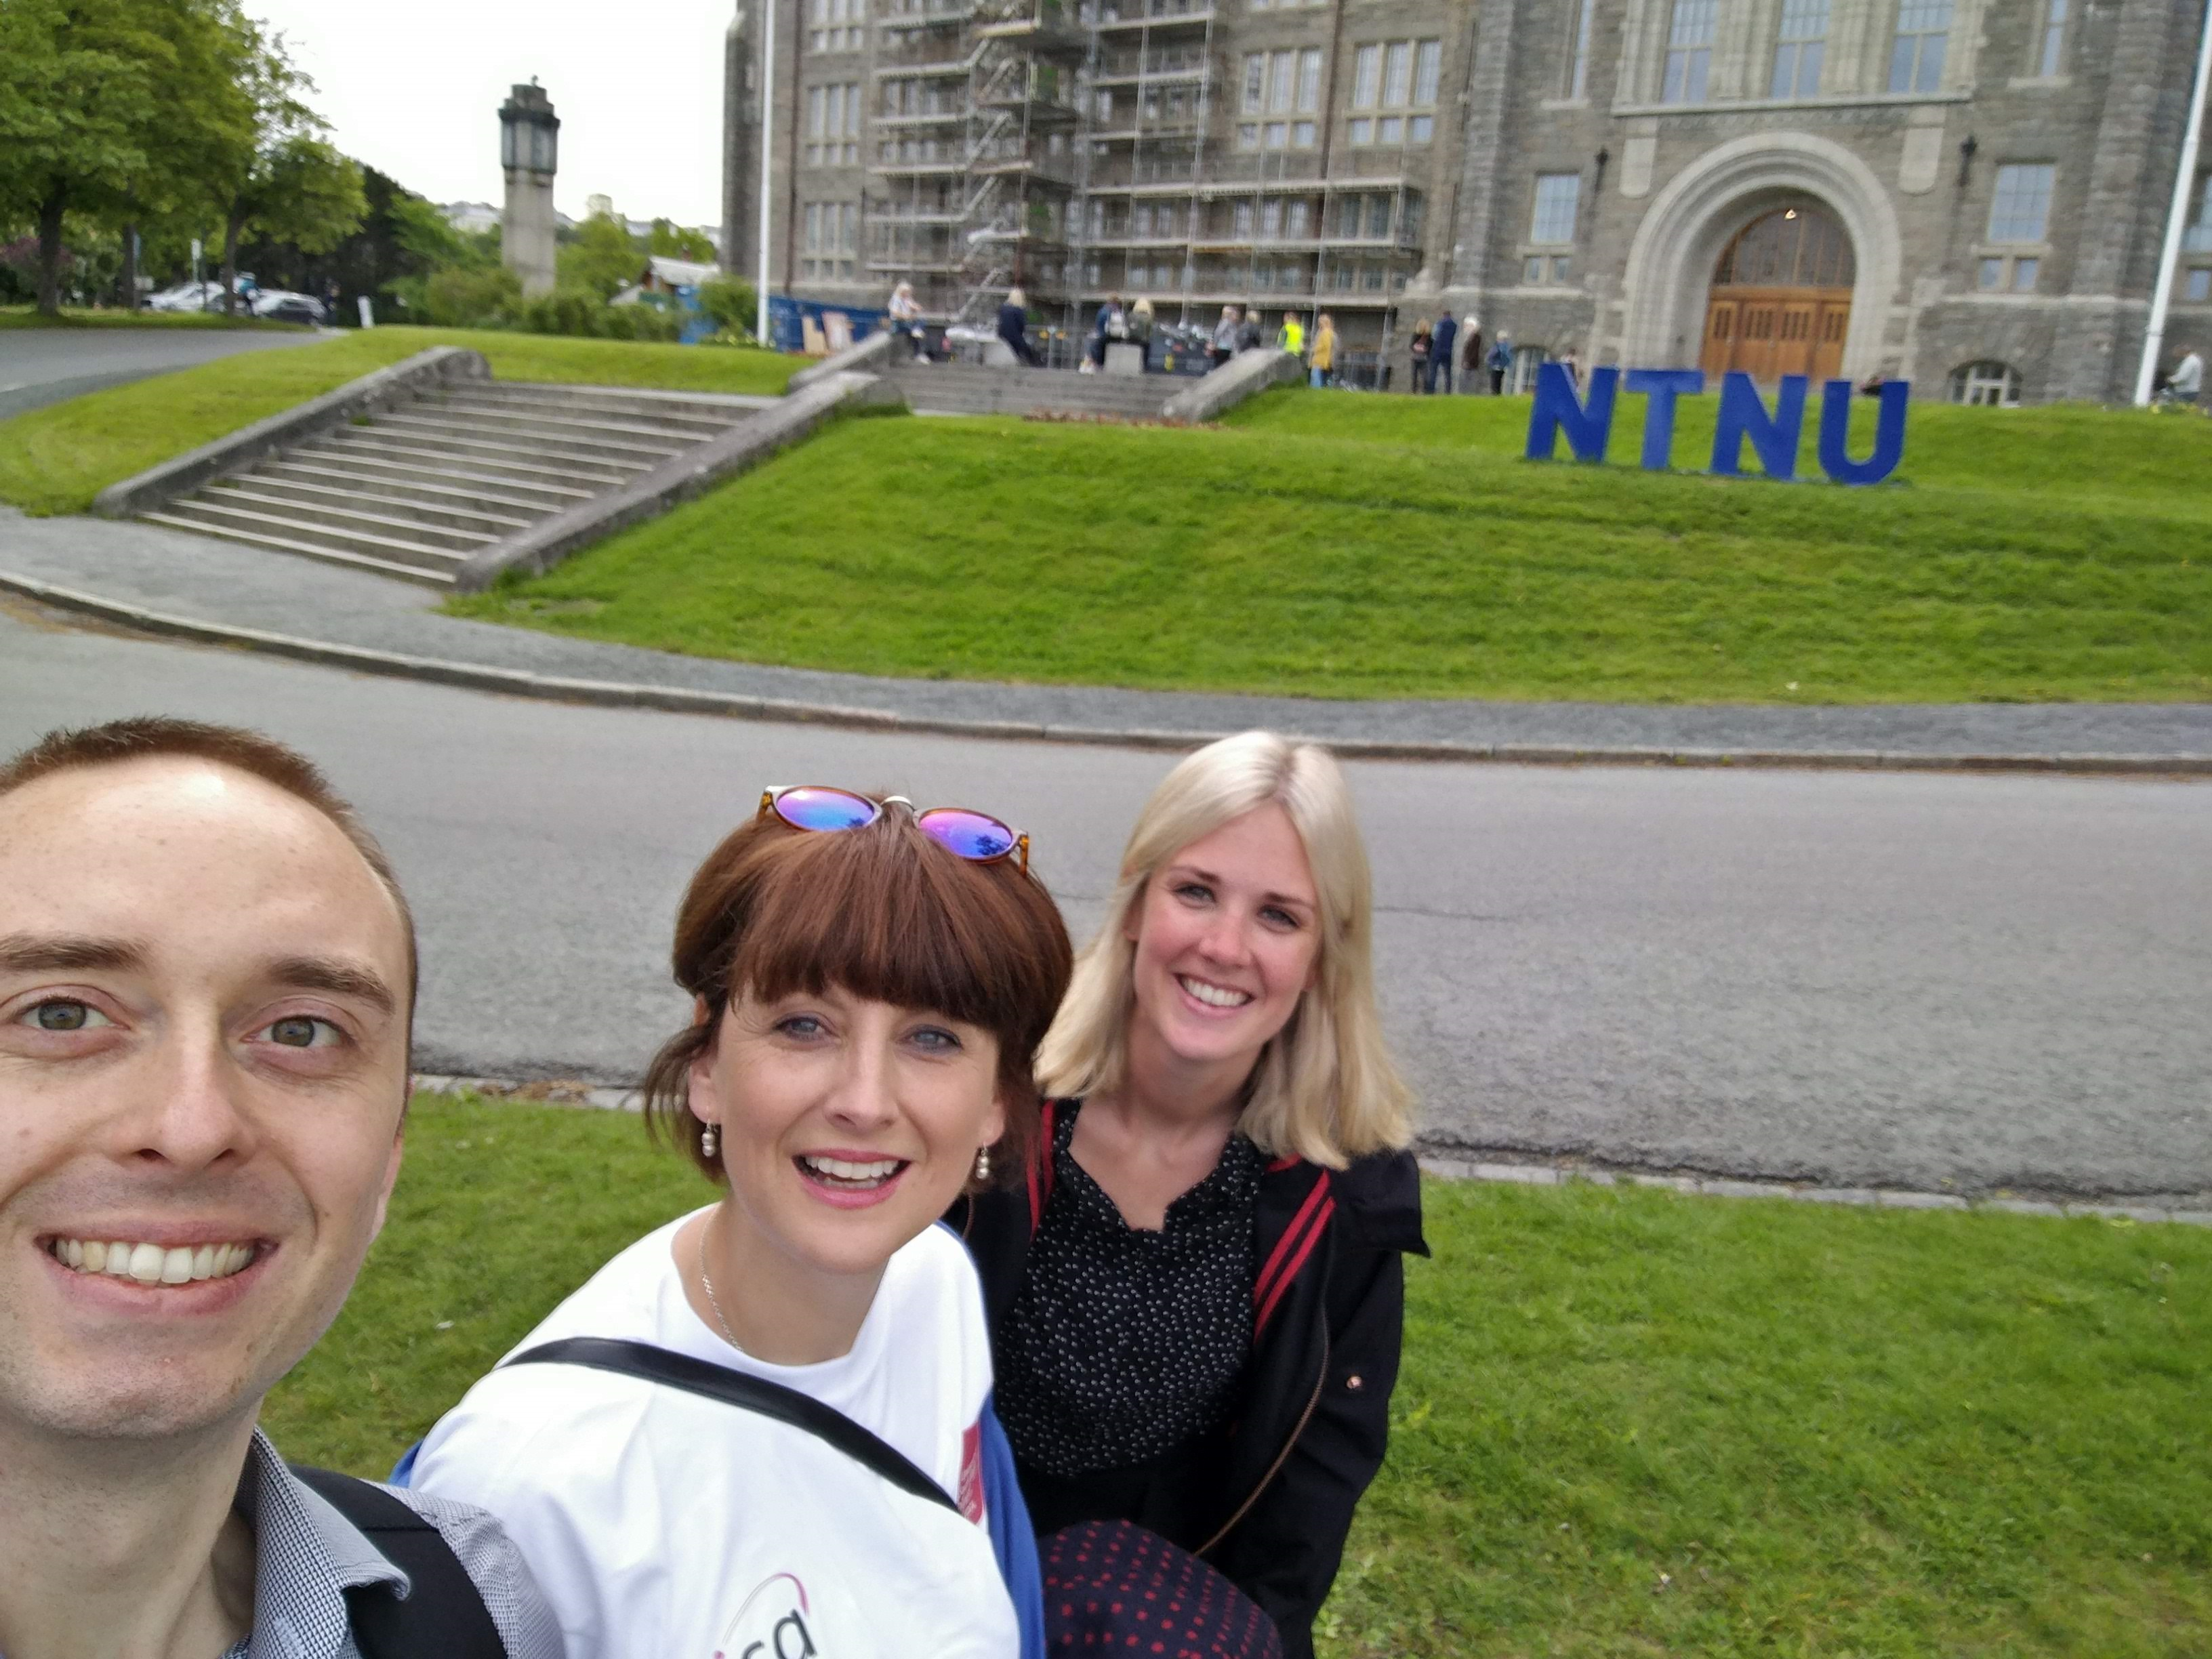 Colour photograph of bursary winners Sam Harrow, Elizabeth Griffiths and Samantha Chester in front of an NTNU building